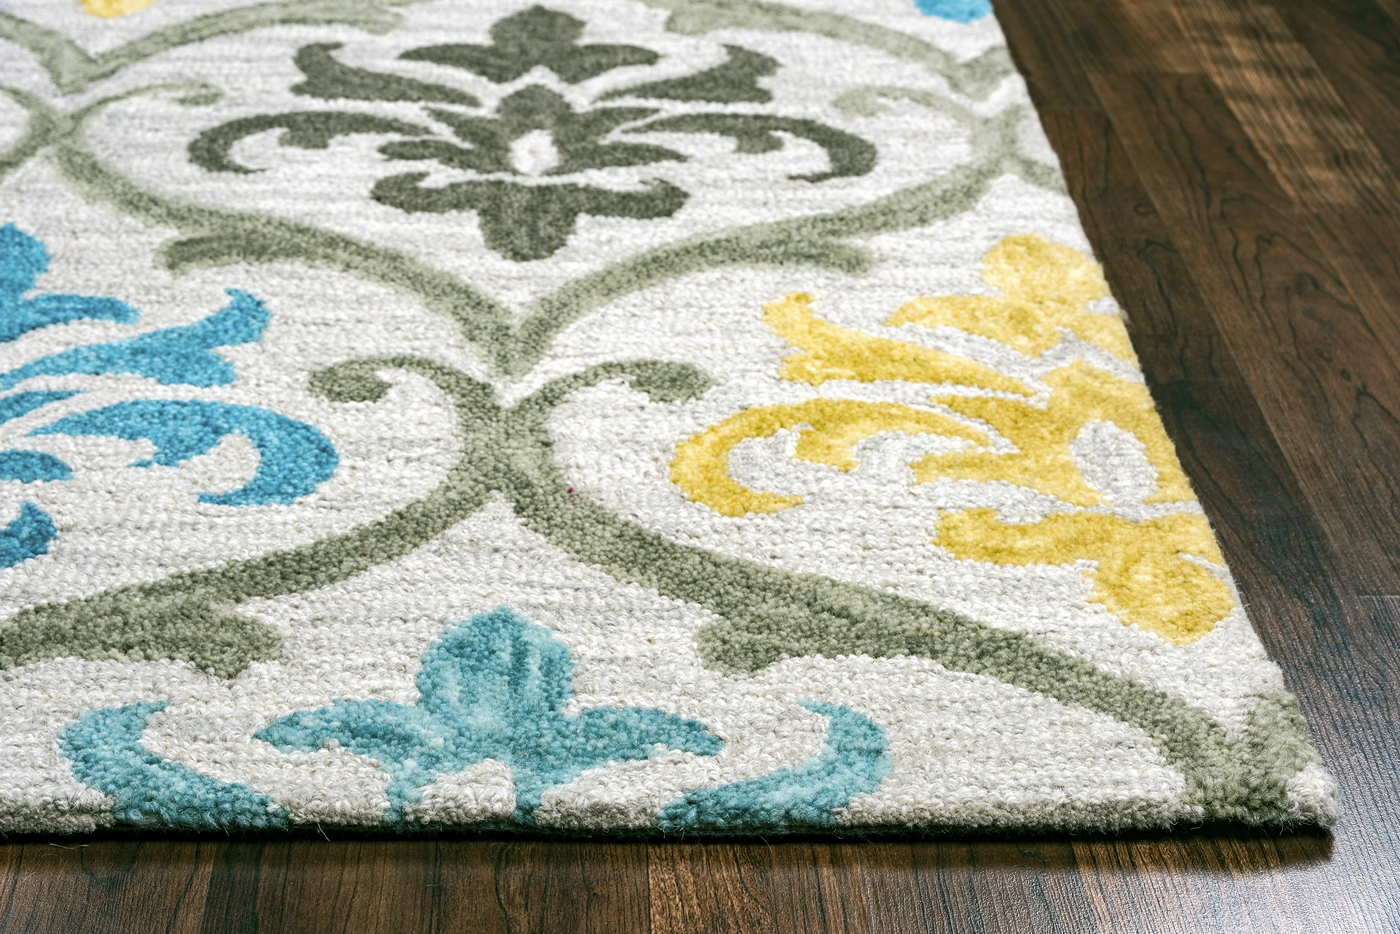 Lancaster Ornate Damask Wool Area Rug In Grey Silver Aqua